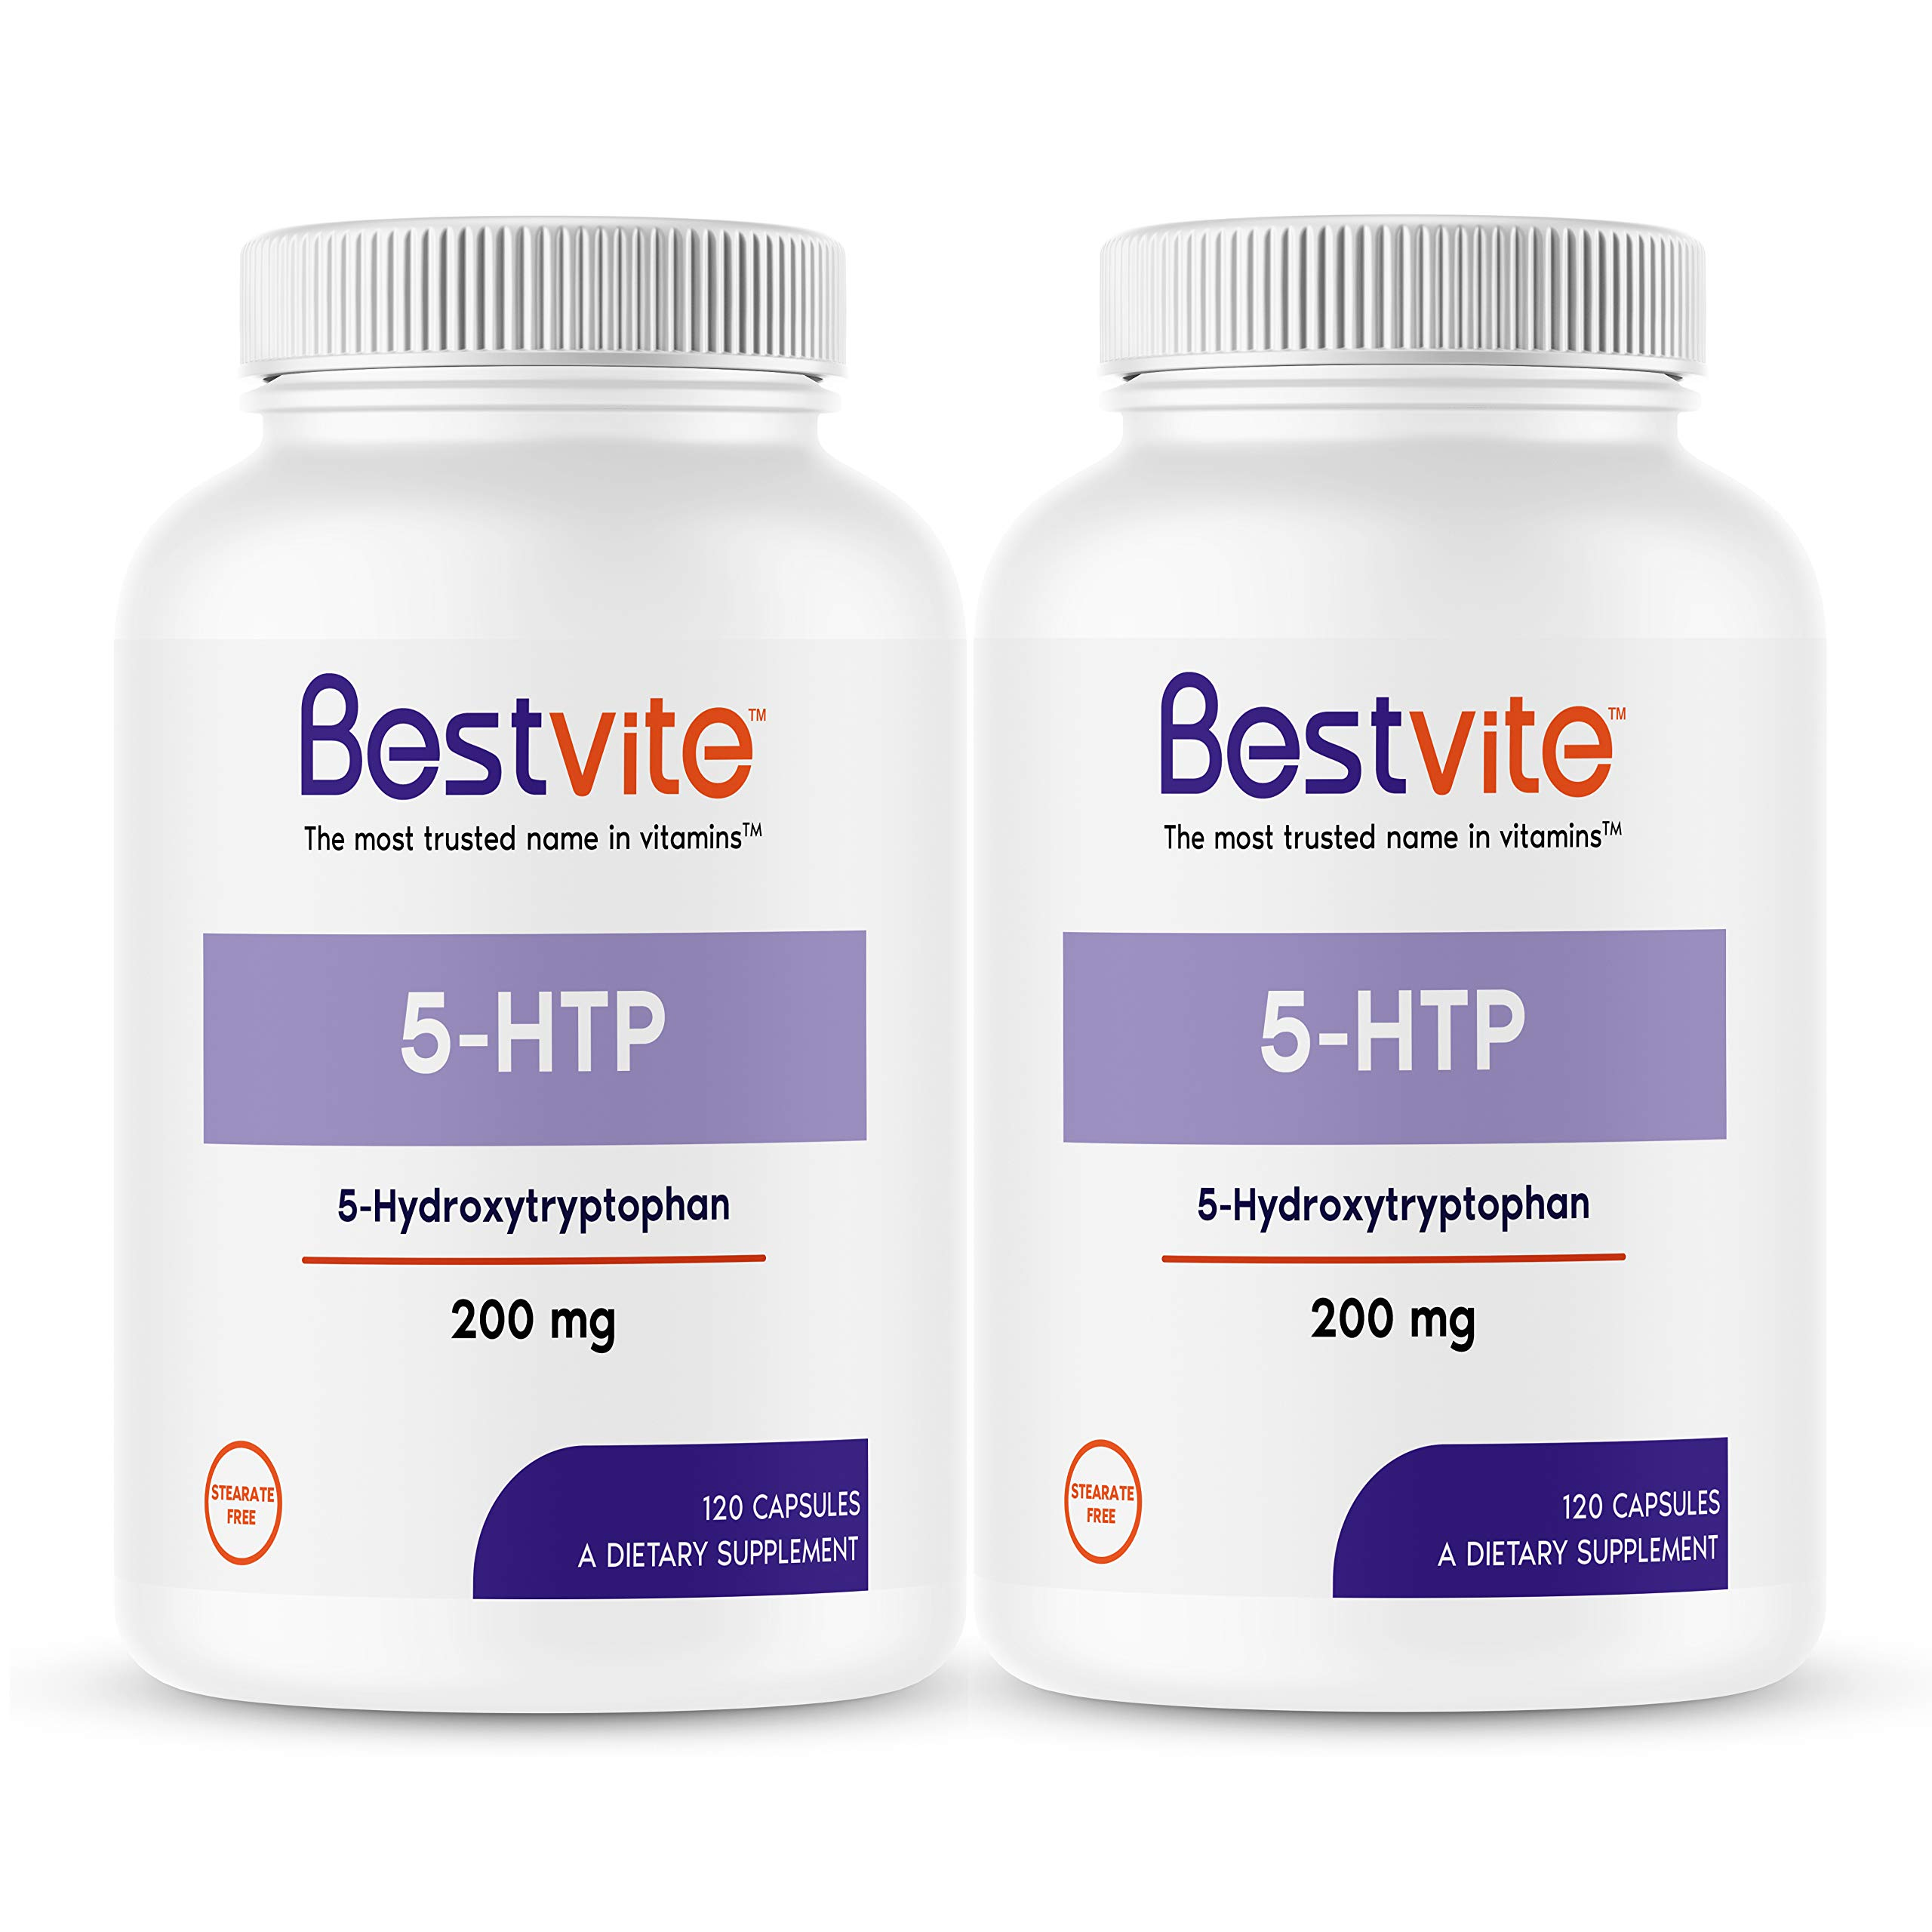 5-HTP 200mg (240 Capsules) (2-Pack) - No Stearates or Flow Agents